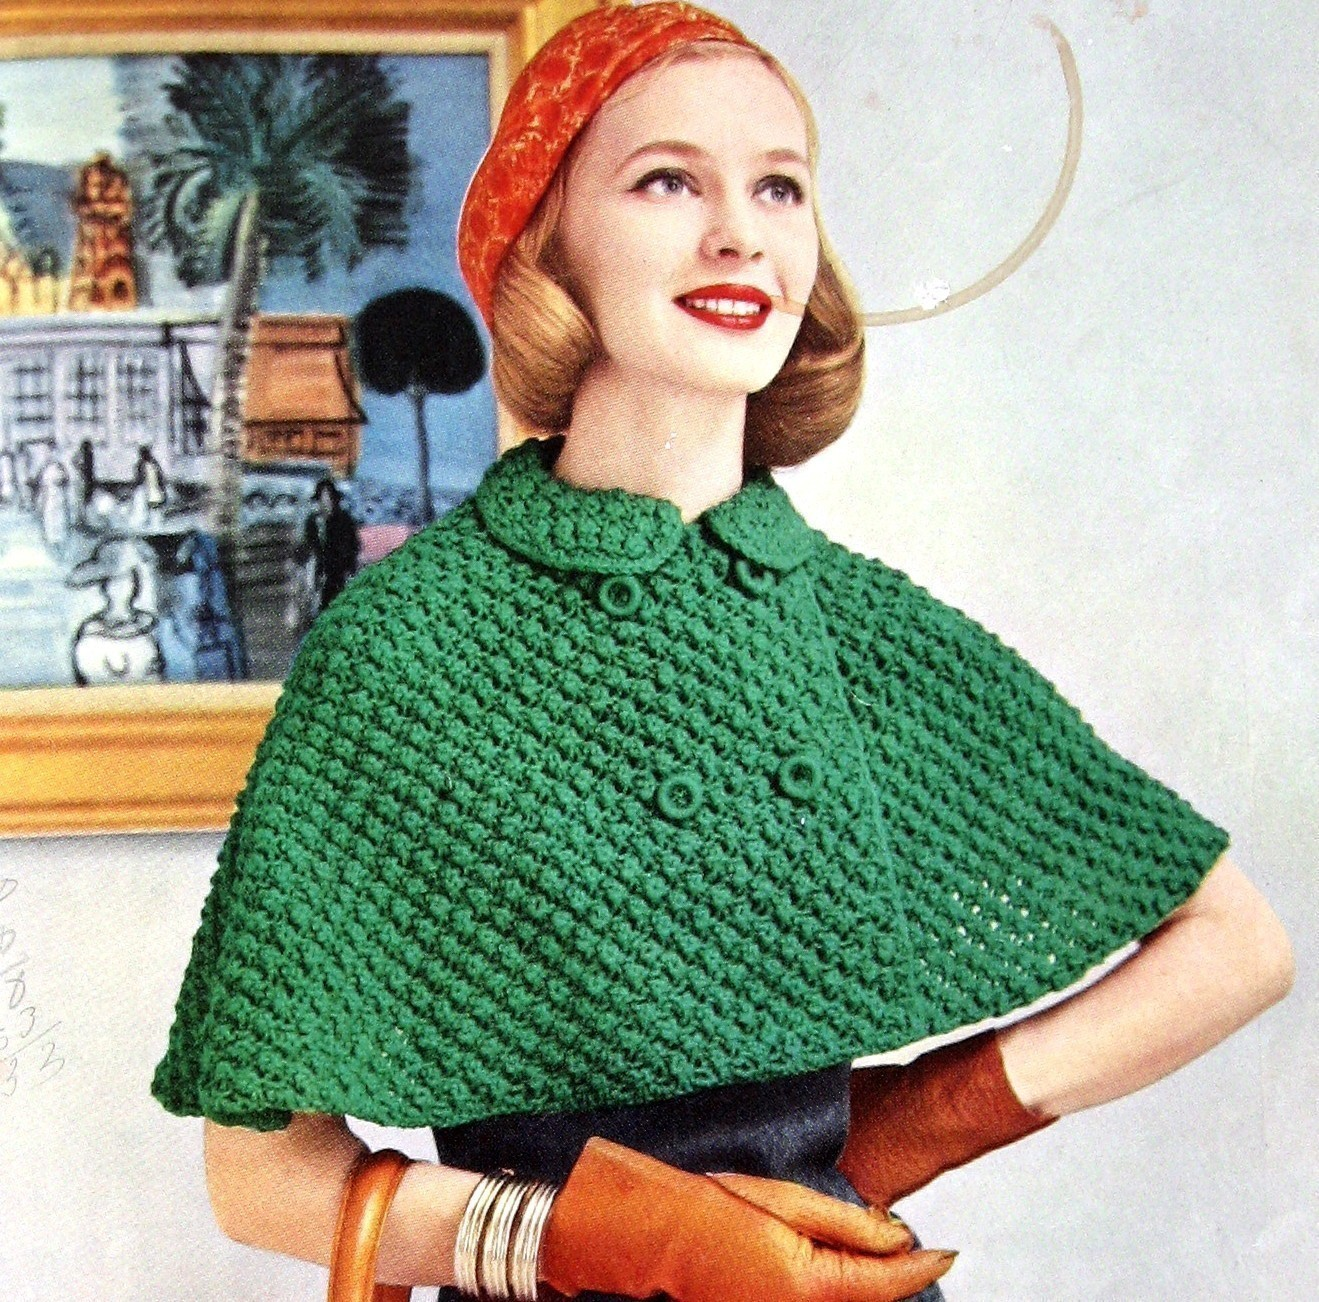 Knitting Patterns For Capelets Free : Knitted Cape Pattern A Knitting Blog